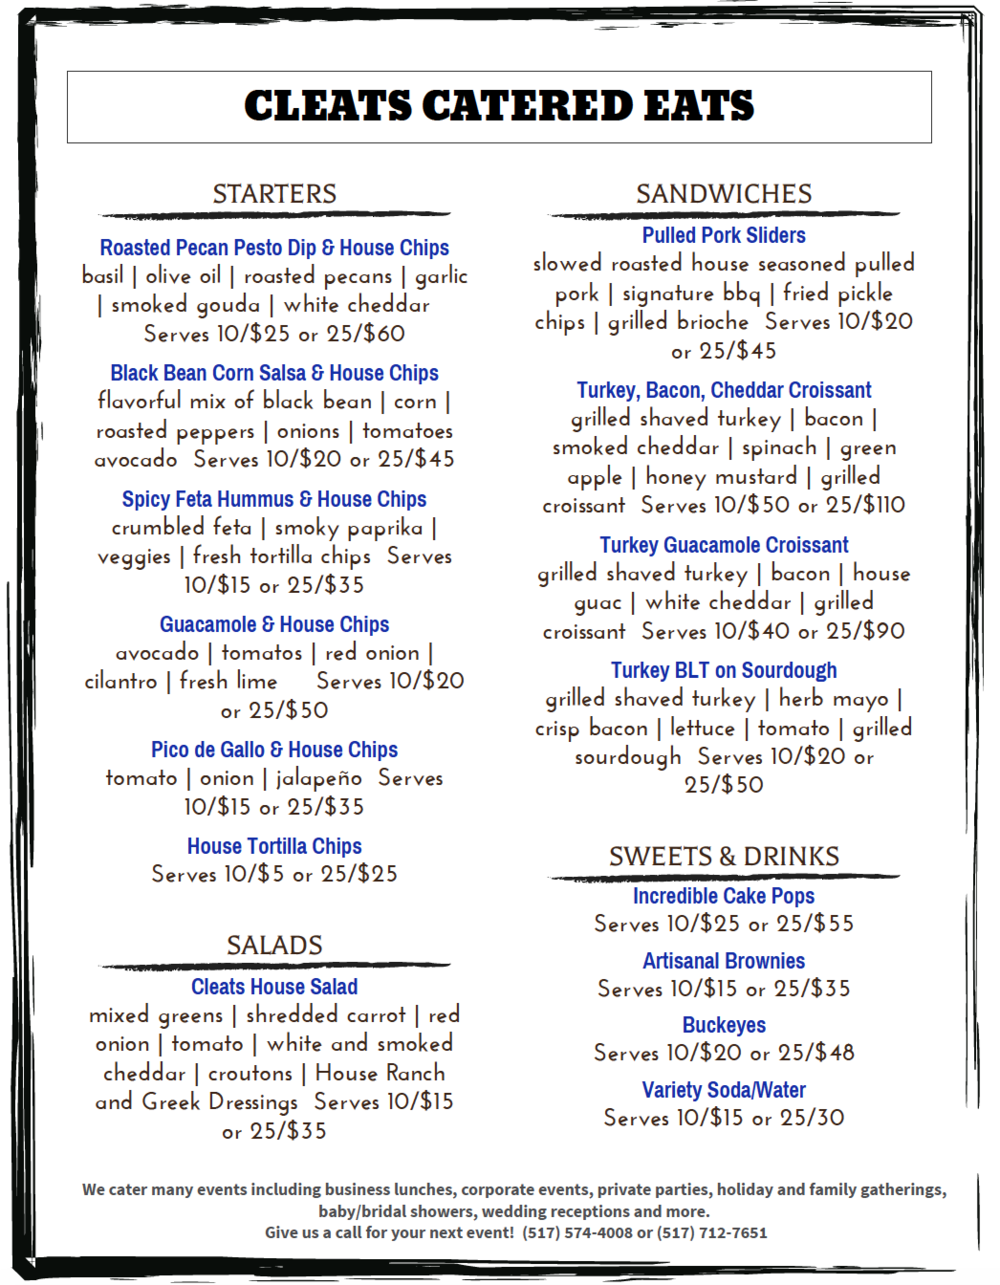 CLEATS CATERING MENU - CLEATS IS OPEN FOR CATERING ONLY DURING WINTER MONTHS.  ALL MENU ITEMS ARE PREPARED FRESH SO PLEASE CALL 48 HOURS IN ADVANCE FOR YOUR SPECIAL CATERED EVENT.  THANK YOU!